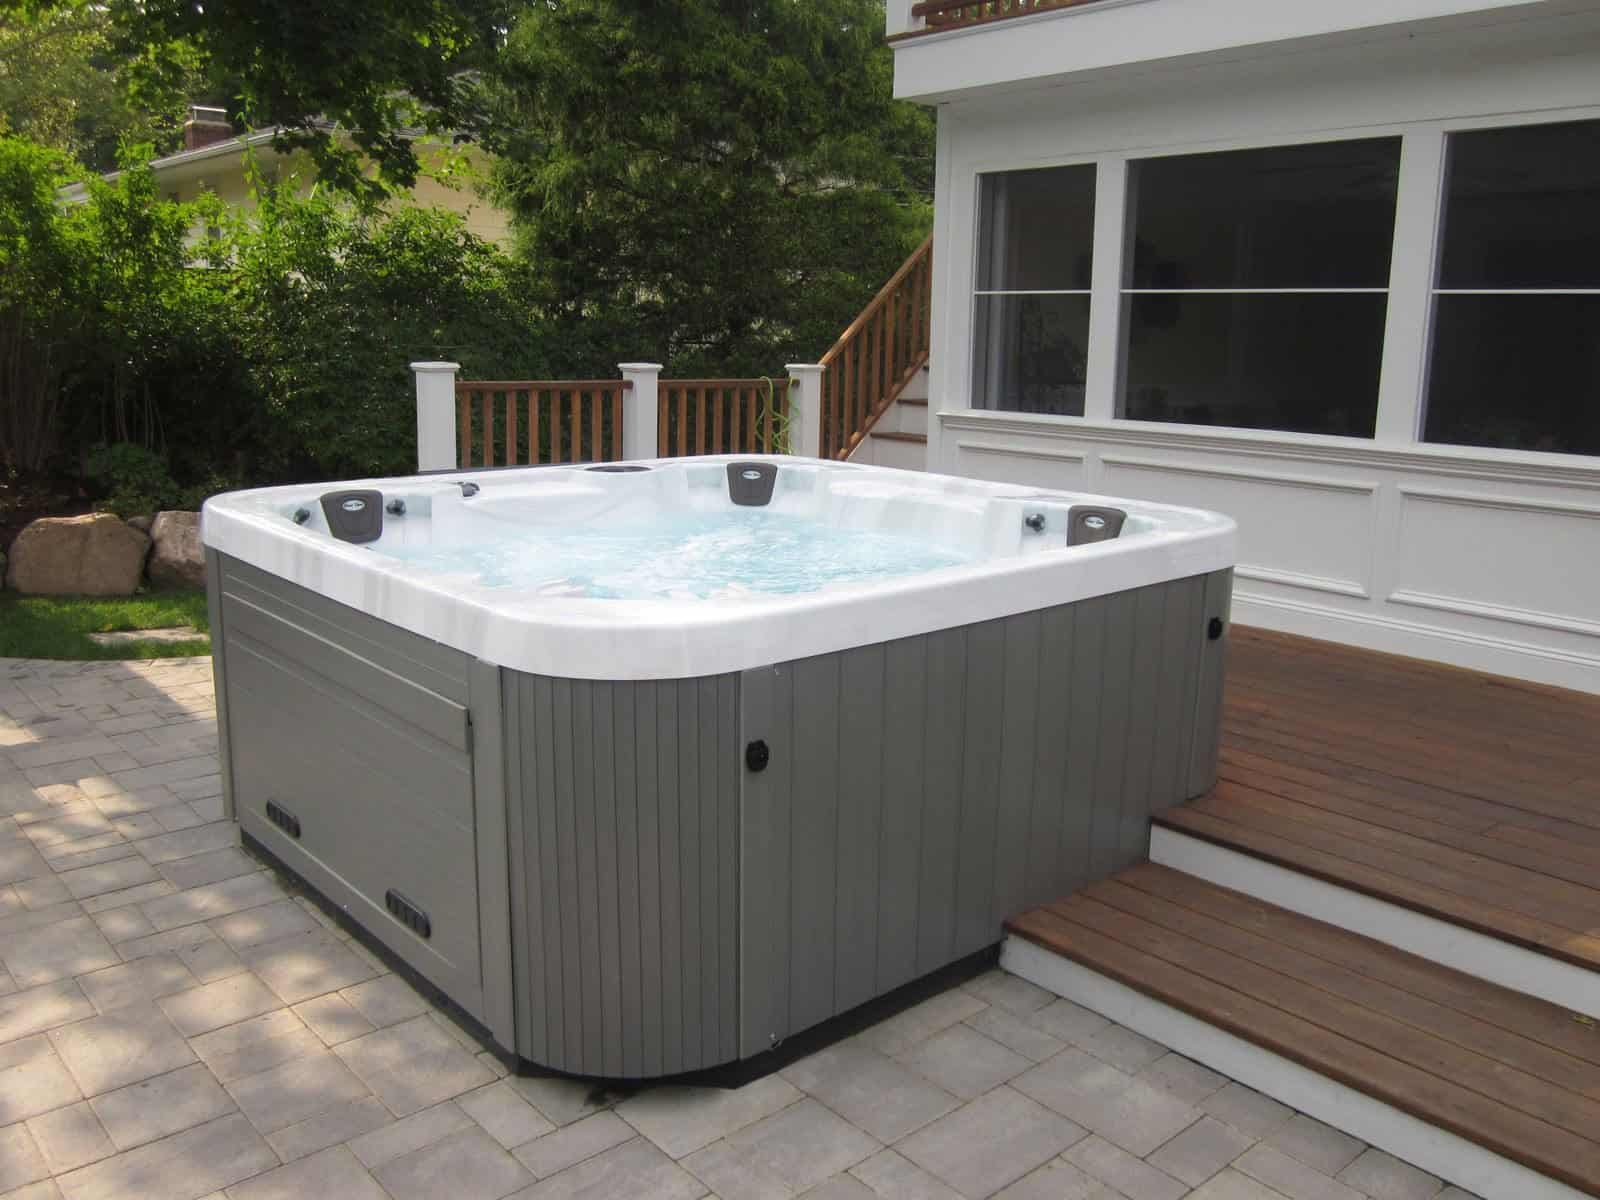 8'x 8' Caldera Spa - Glen Cove, Long Island NY